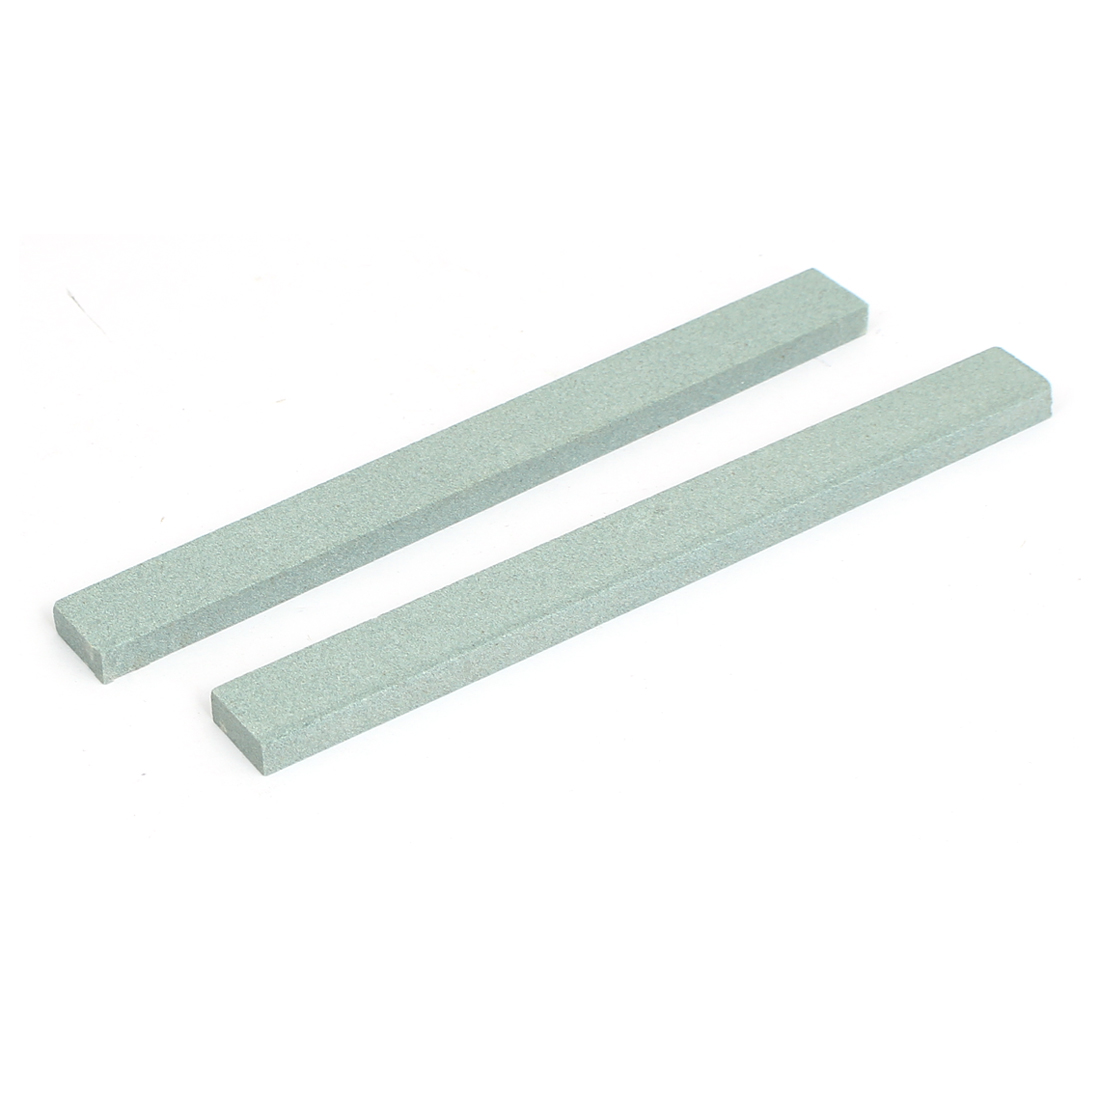 Engineered Abrasives Grinding Rectangular Polishing Oil Stone Stick Sharpener 2 Pcs